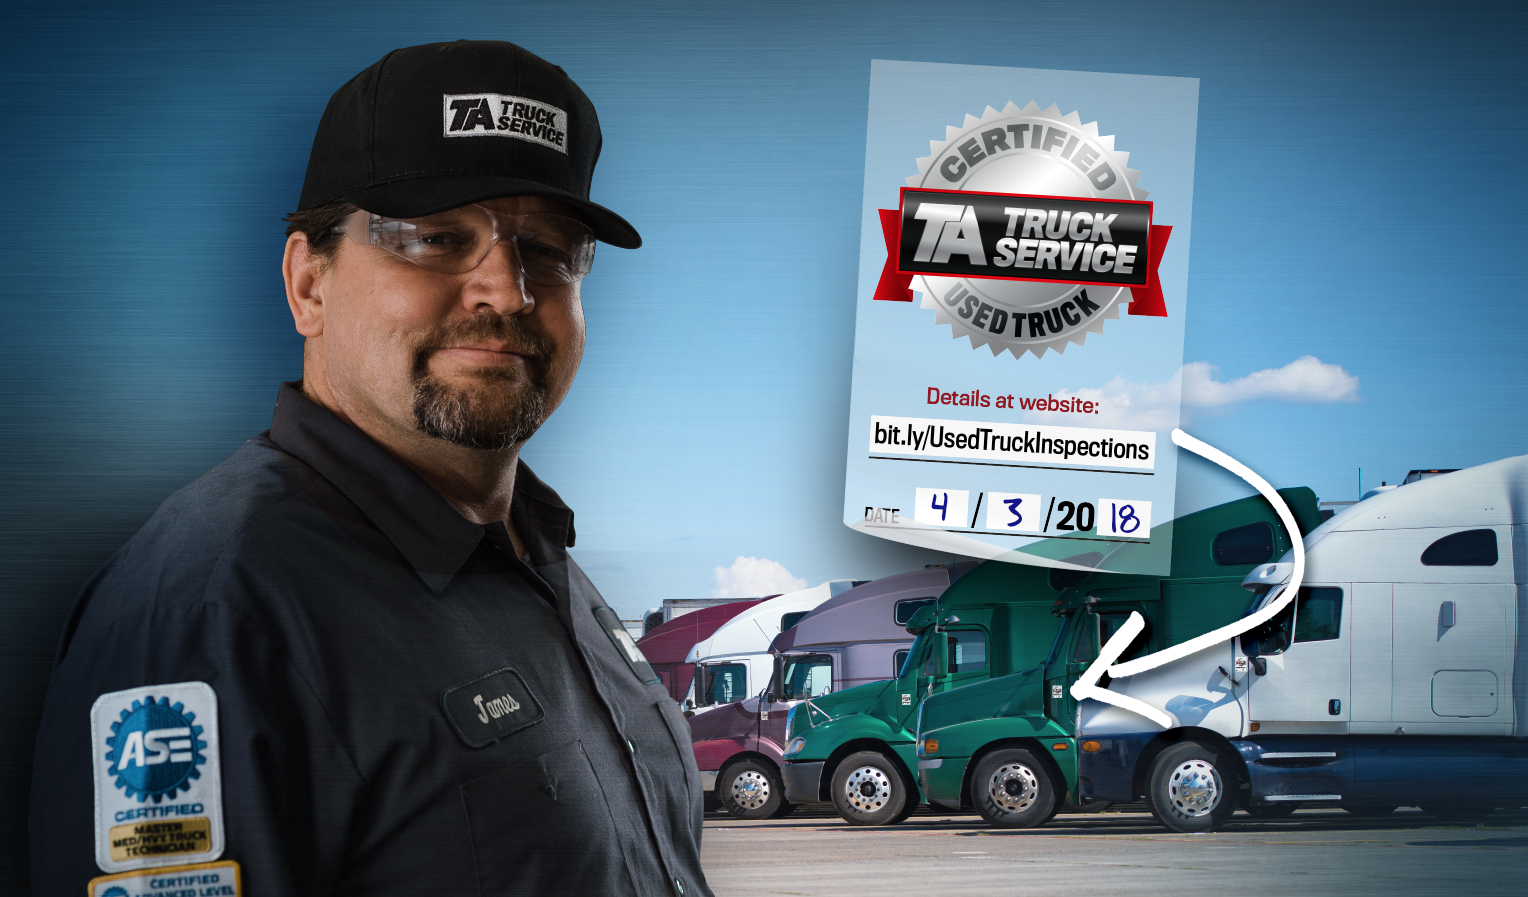 Ta Truck Service Launches Certified Used Truck And